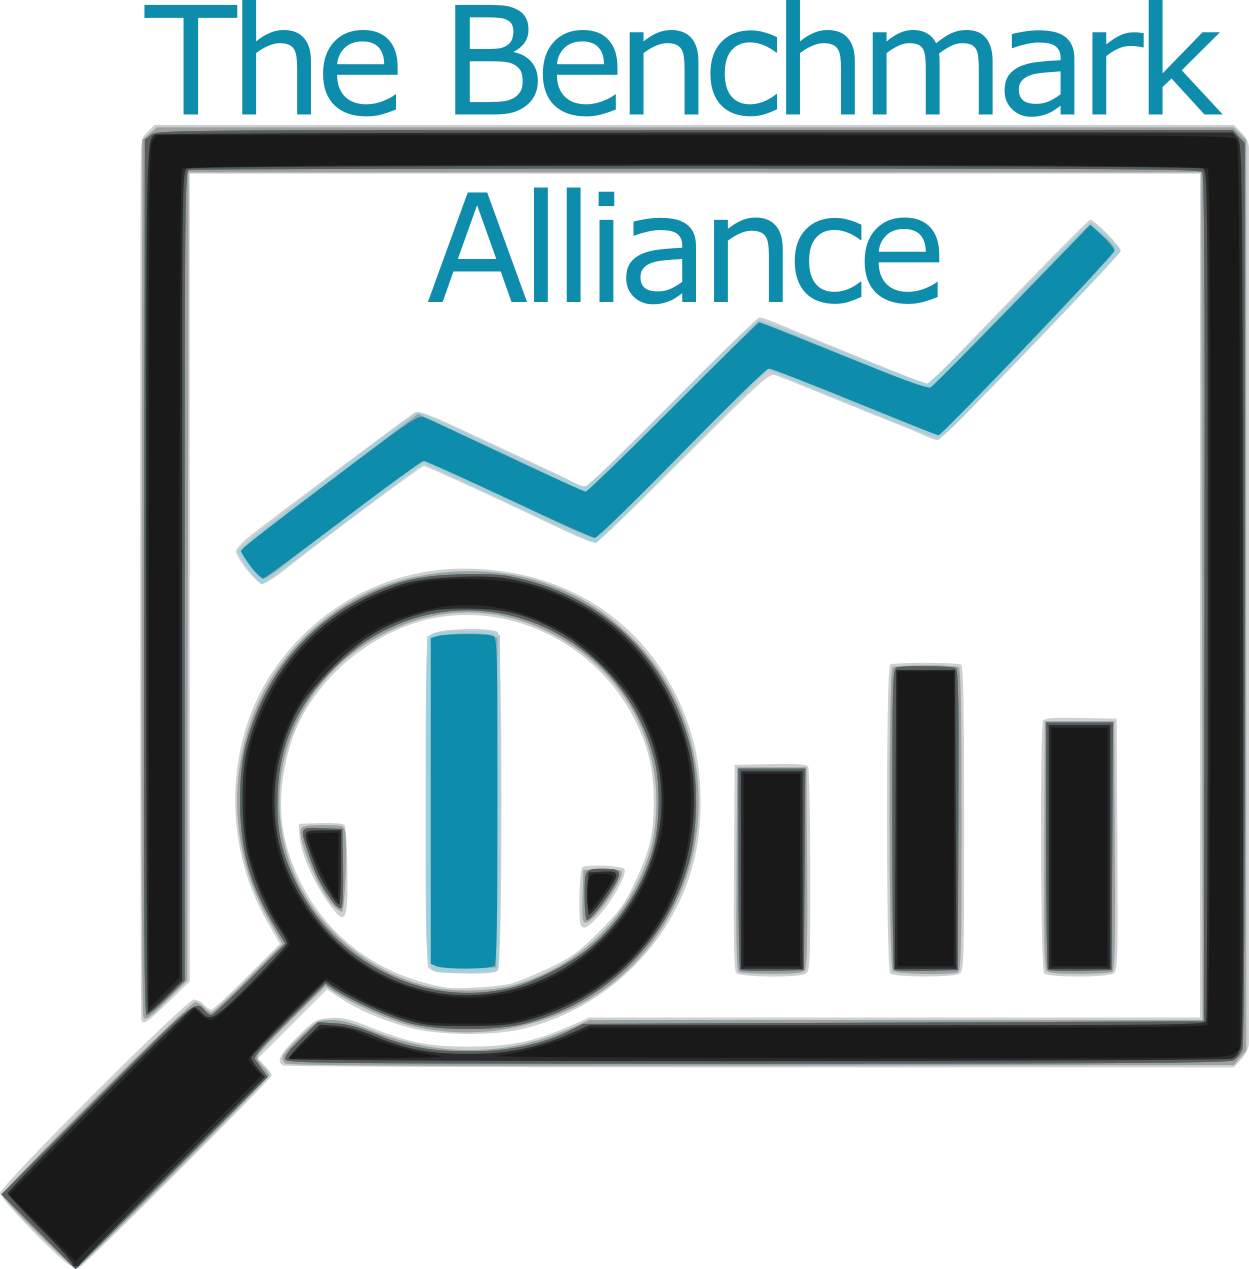 The Benchmark Alliance